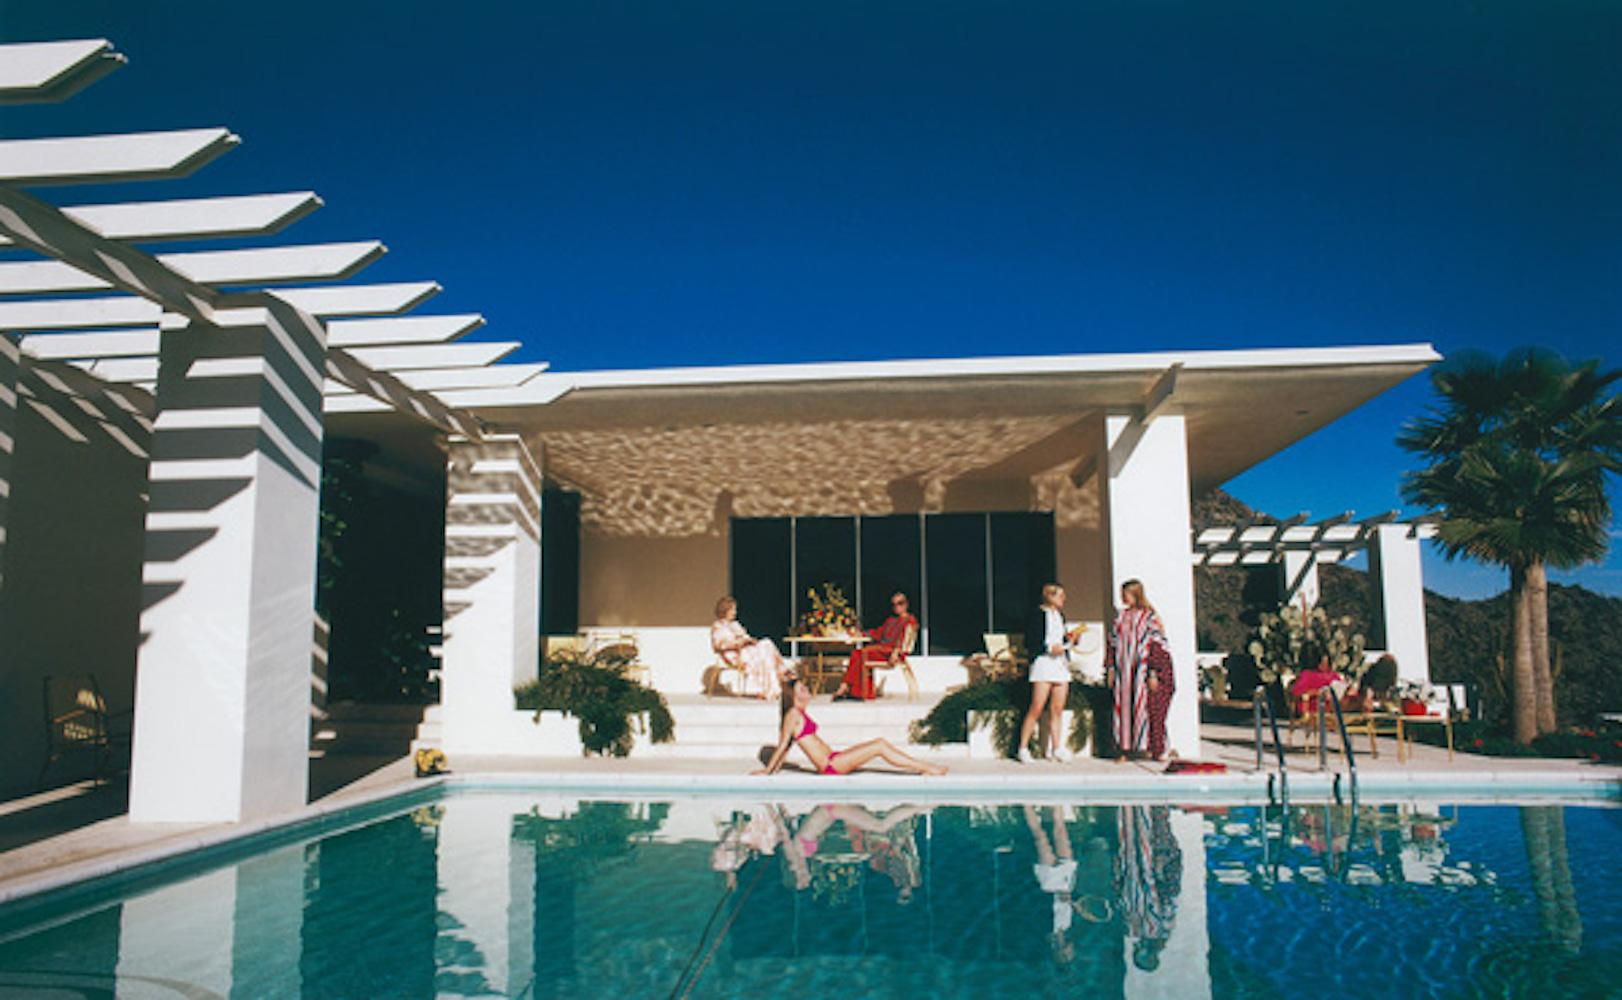 Poolside in Arizona - Slim Aarons, 20th Century, Modern architecture, Pool, Luxe